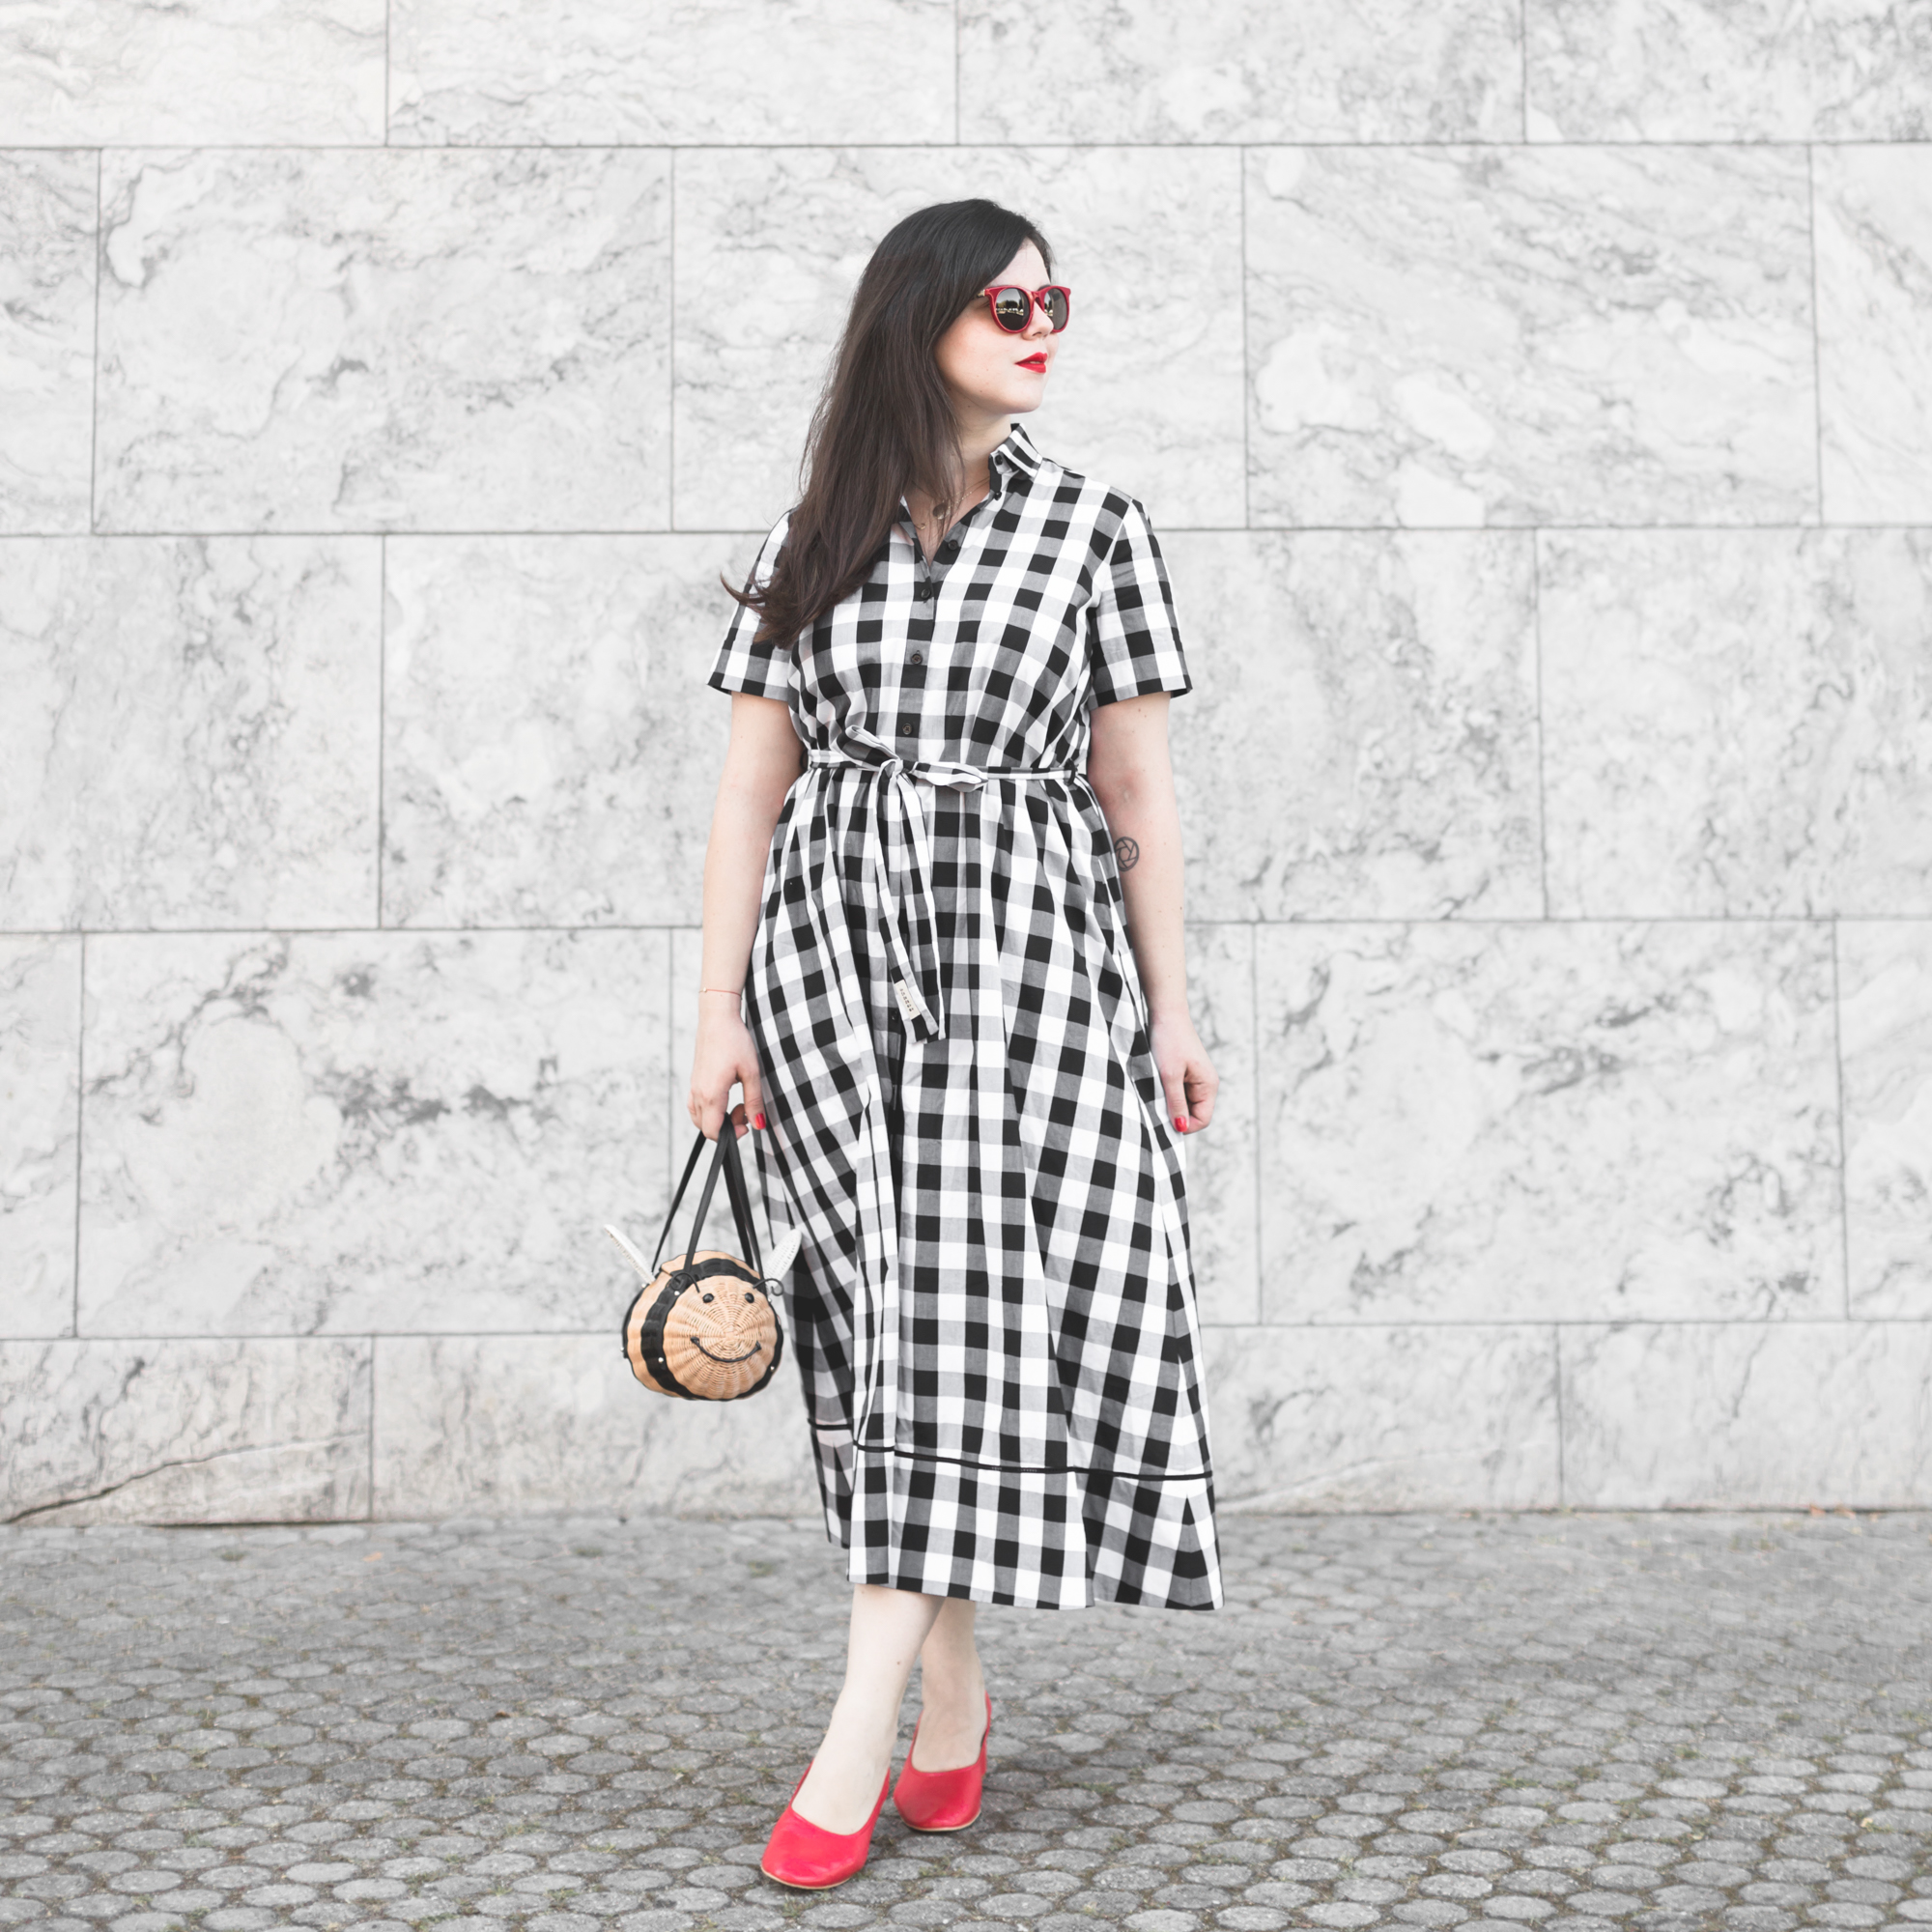 2000 gingham dress kate spade new york bumble bee bag - credit Pauline paulinefashionblog.com-1